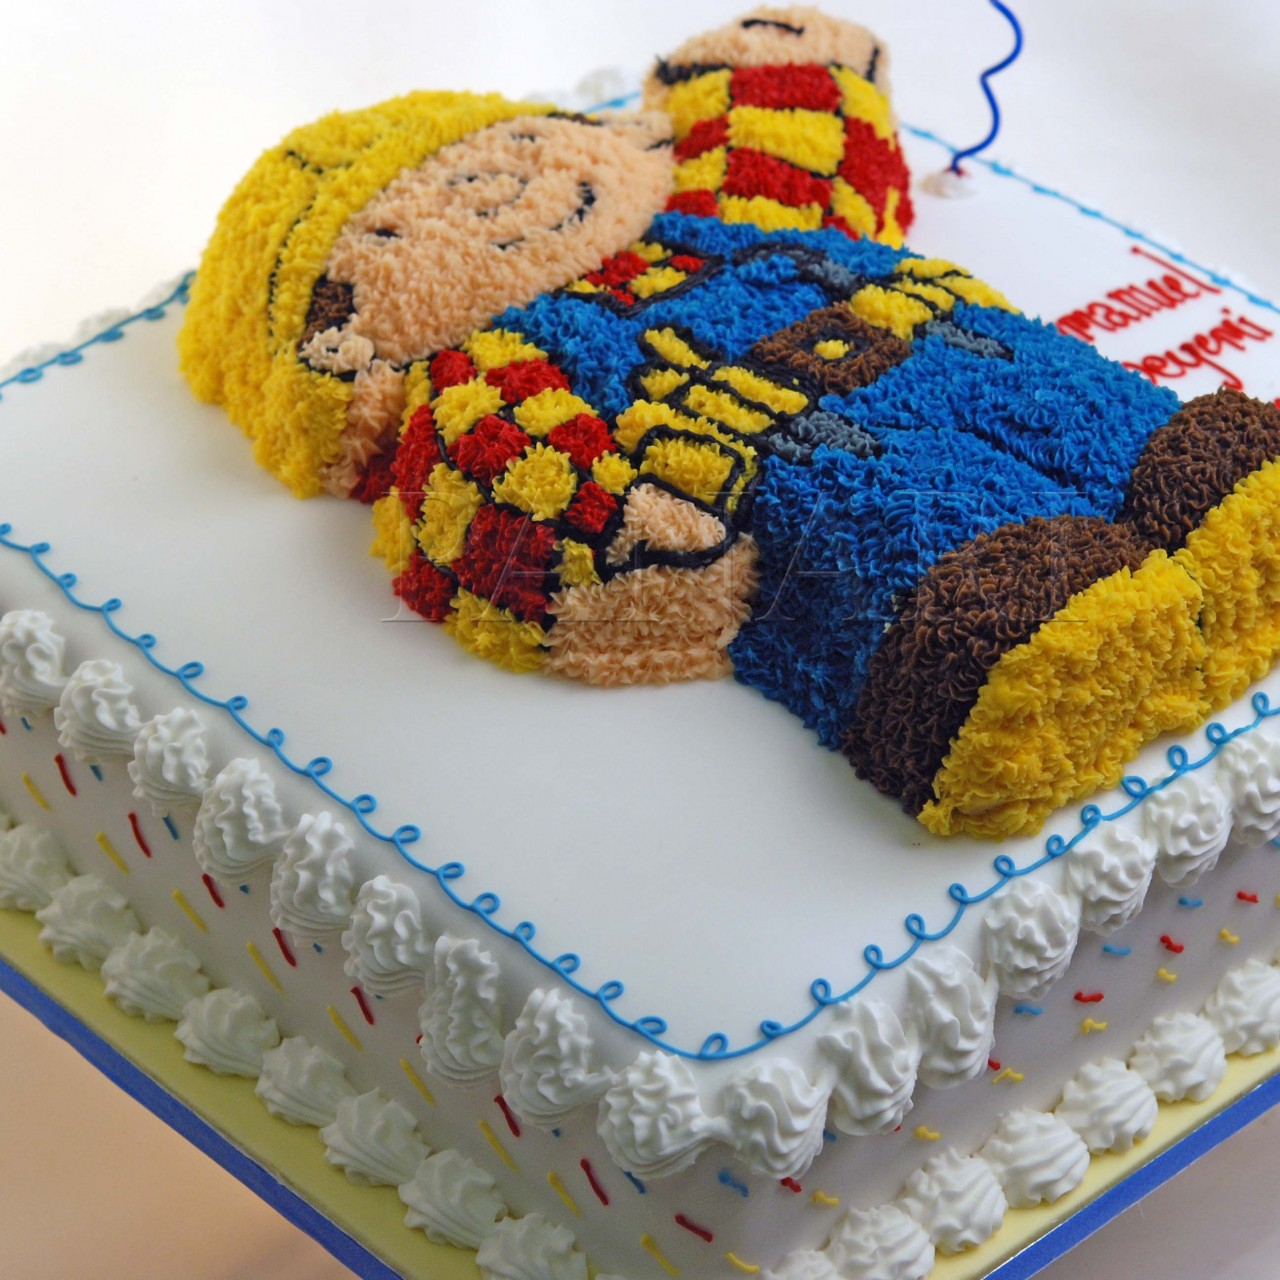 How To Make Bob The Builder Cake